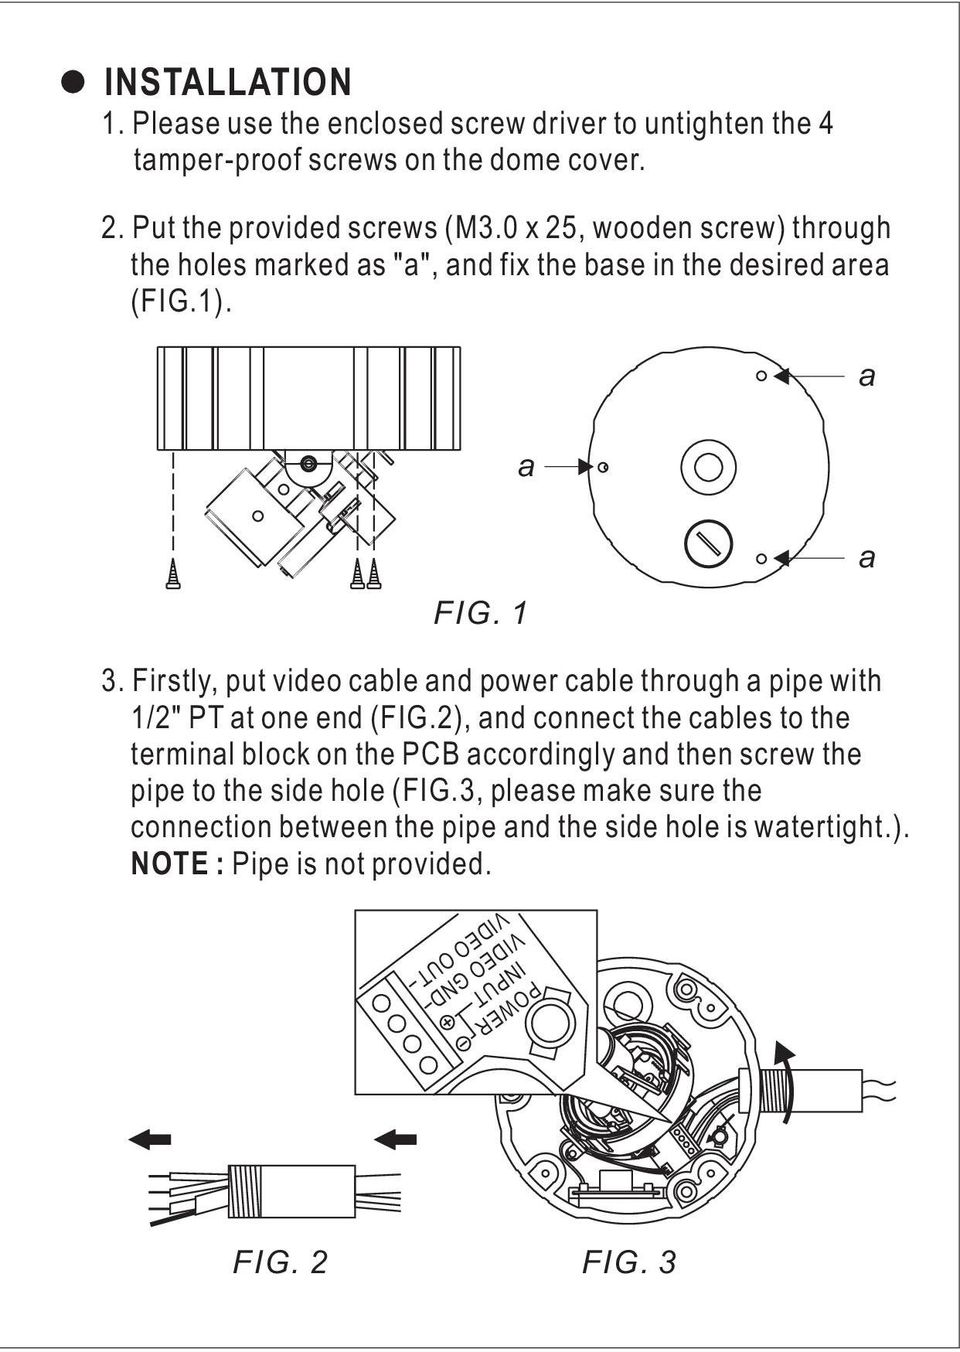 "Firstly, put video cable and power cable through a pipe with 1/2"" PT at one end (FIG."